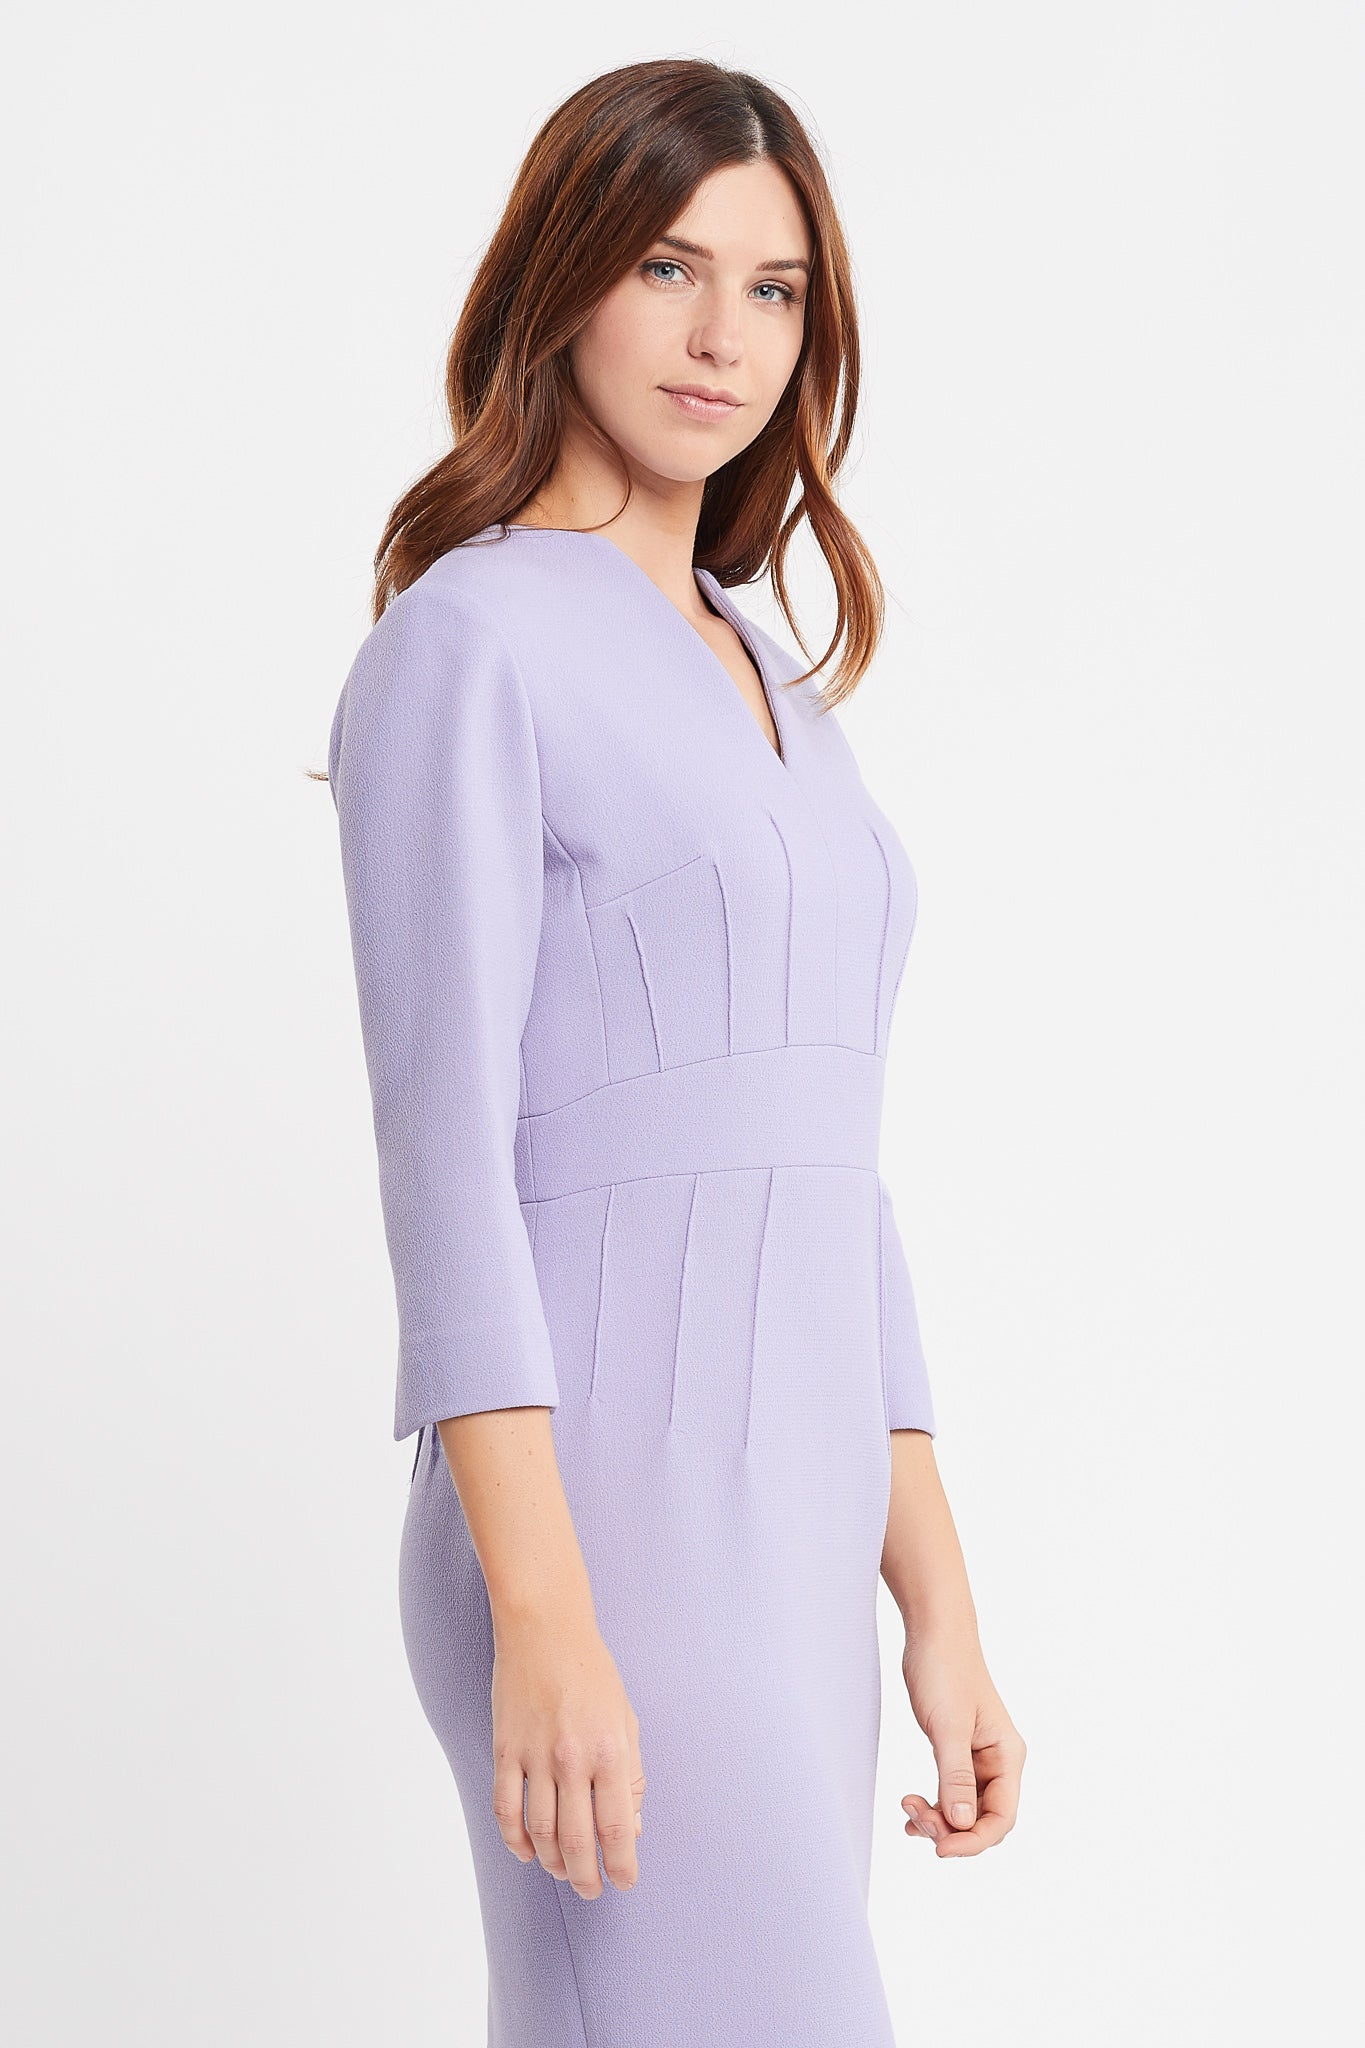 Dalila 3/4 Sleeves Sheath Lilac Work and Cocktail Dress